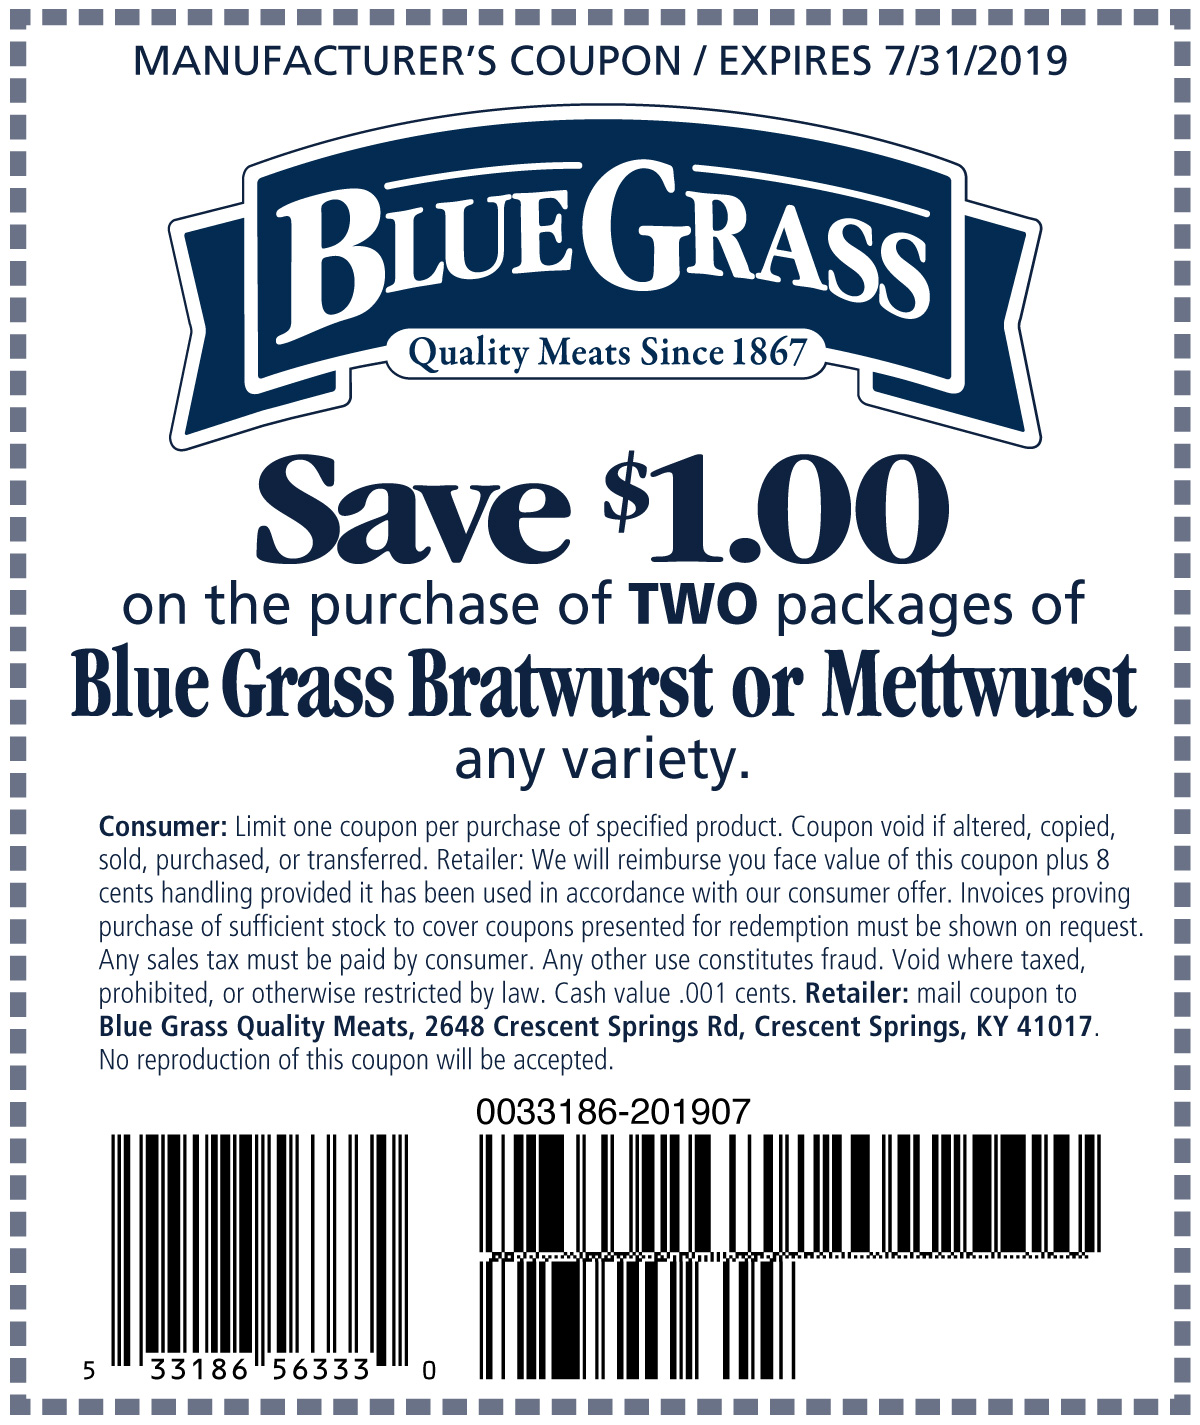 Save $1.00 on the purchase of TWO packages of Blue Grass Bratwurst or Mettwurst any variety.